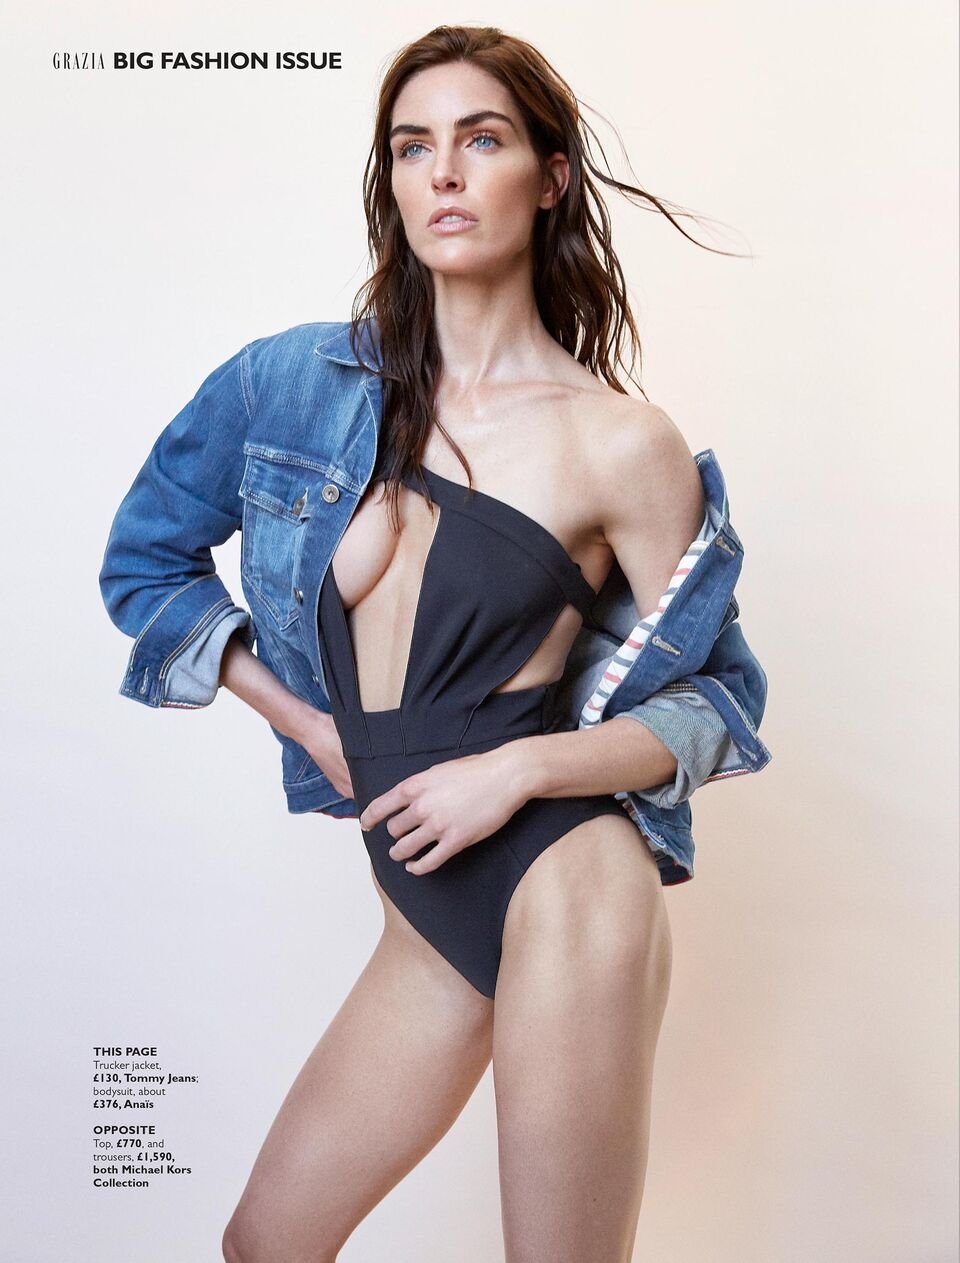 9.17 Hilary Rhoda - Grazia UK ANAIS.jpg